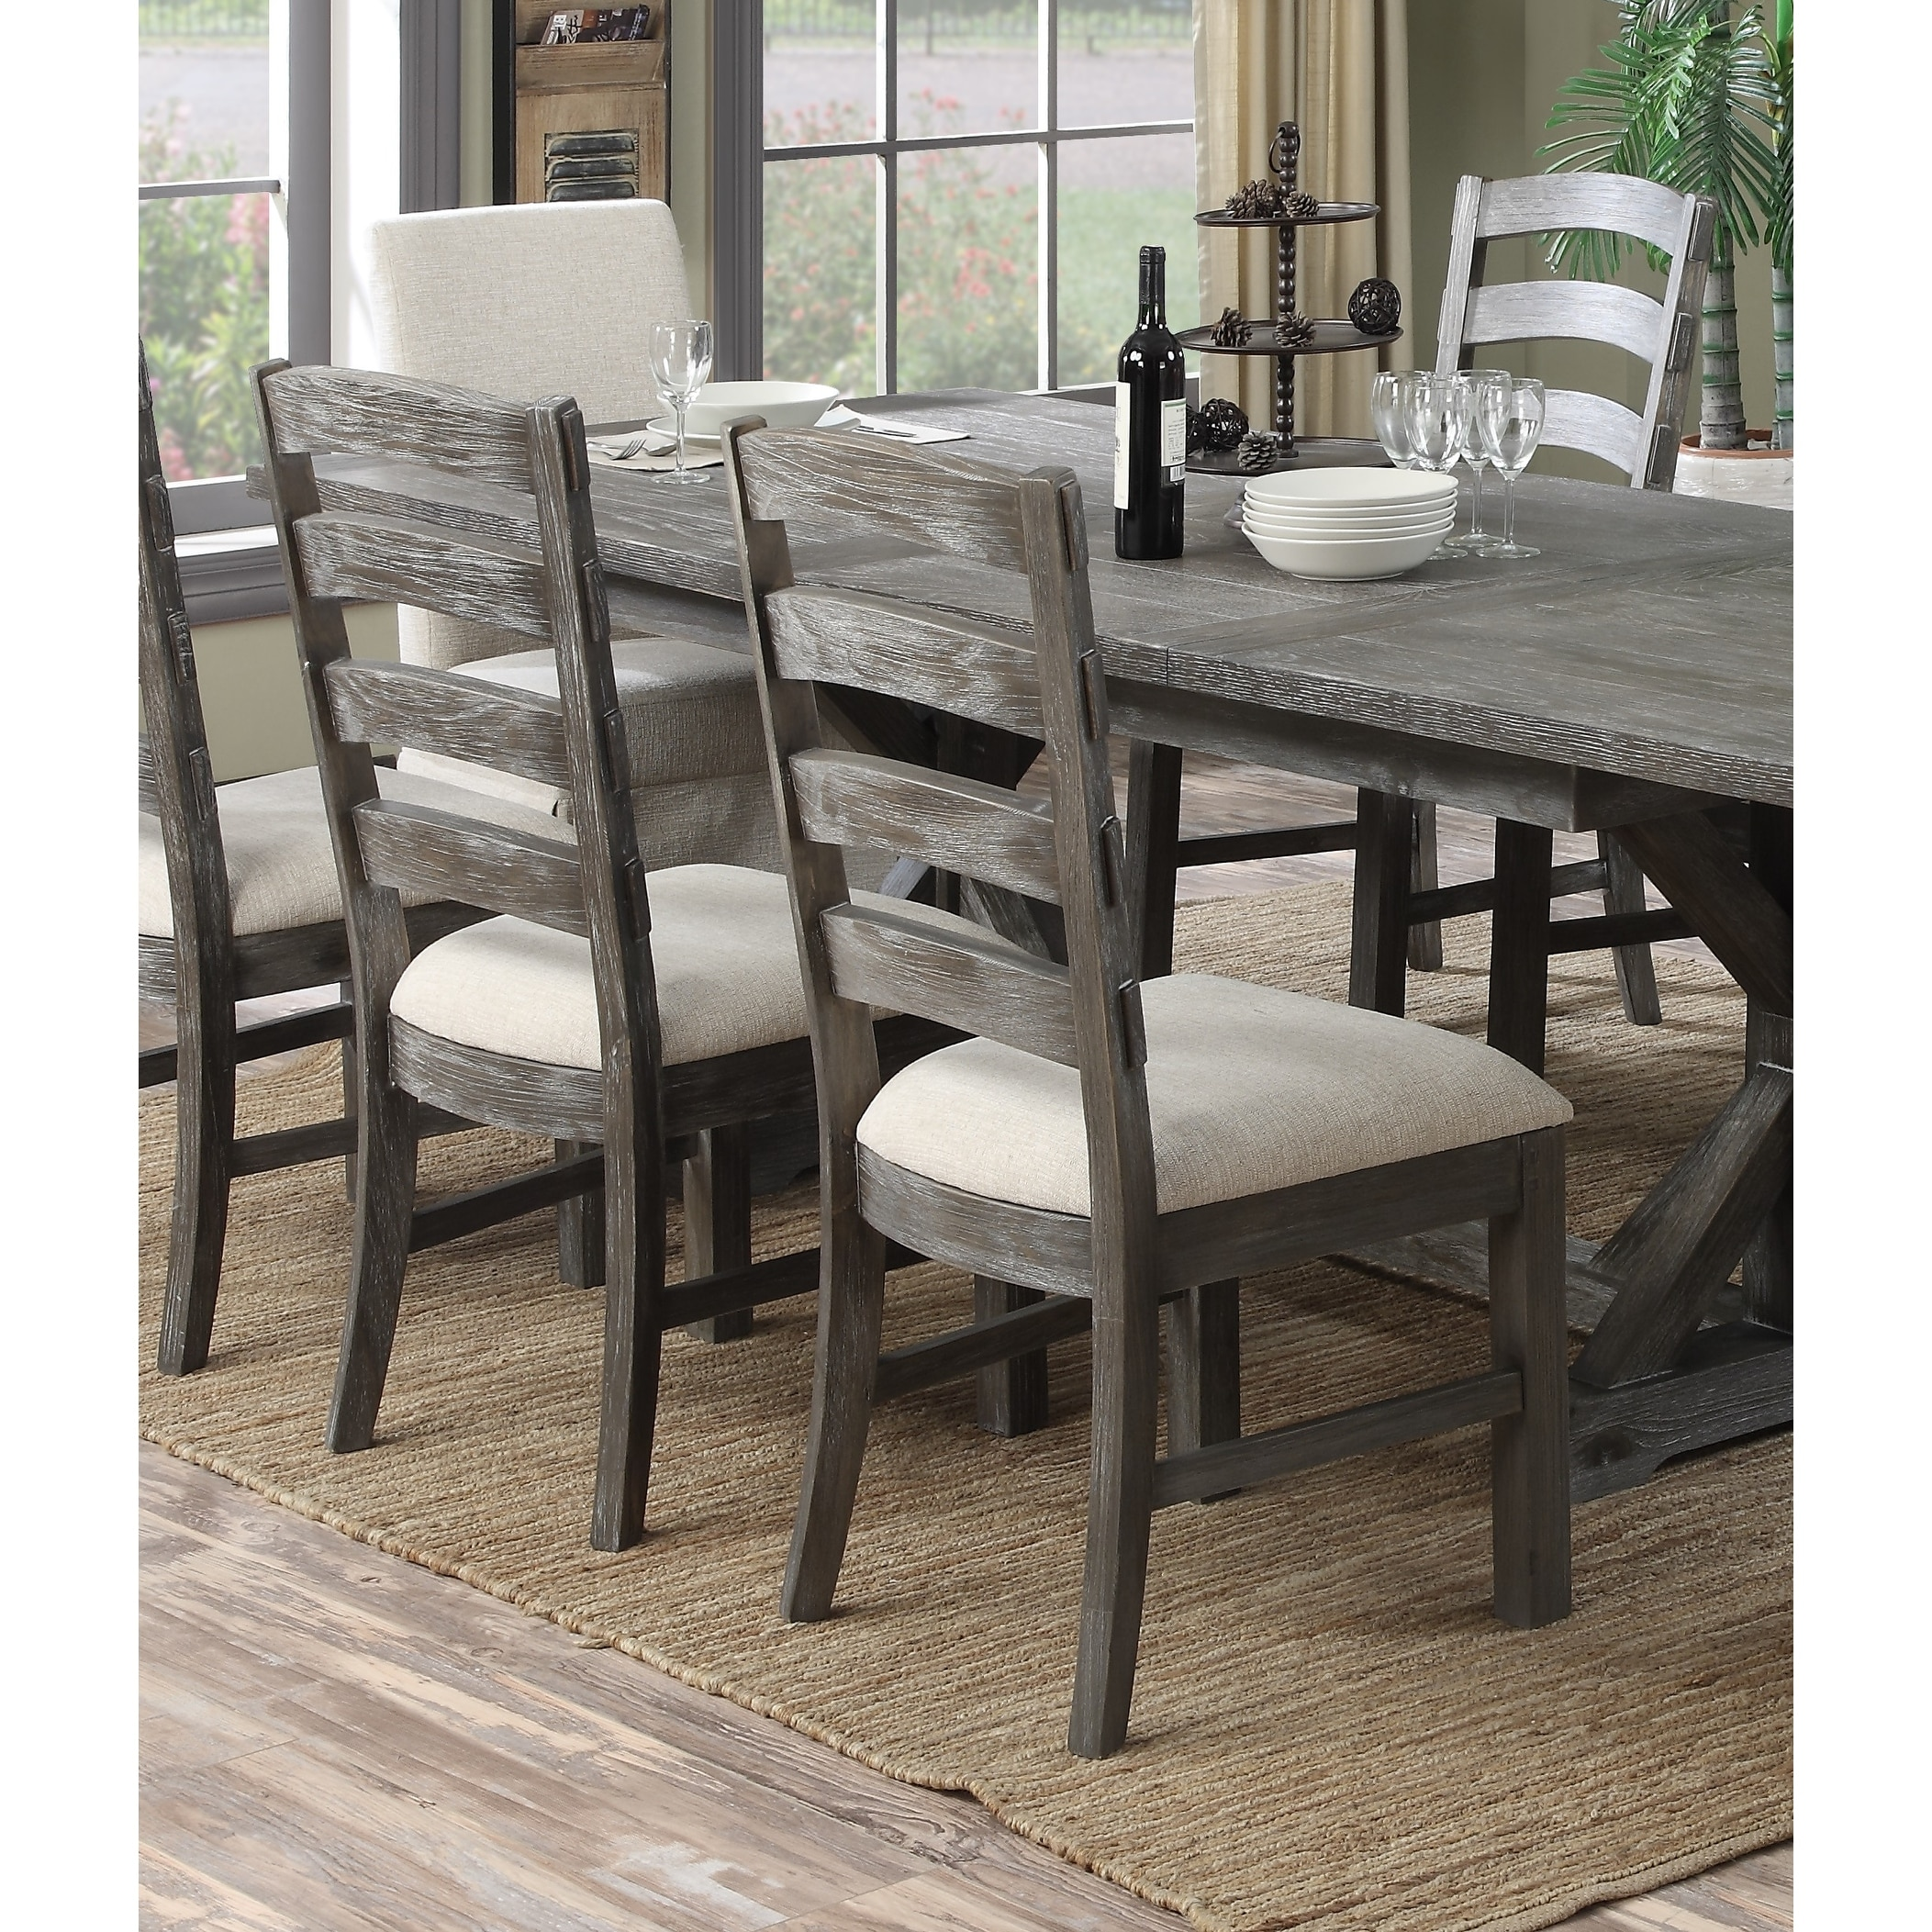 The Gray Barn Snowshill Rustic Charcoal Grey Dining Chair Set Of 2 On Sale Overstock 18047846